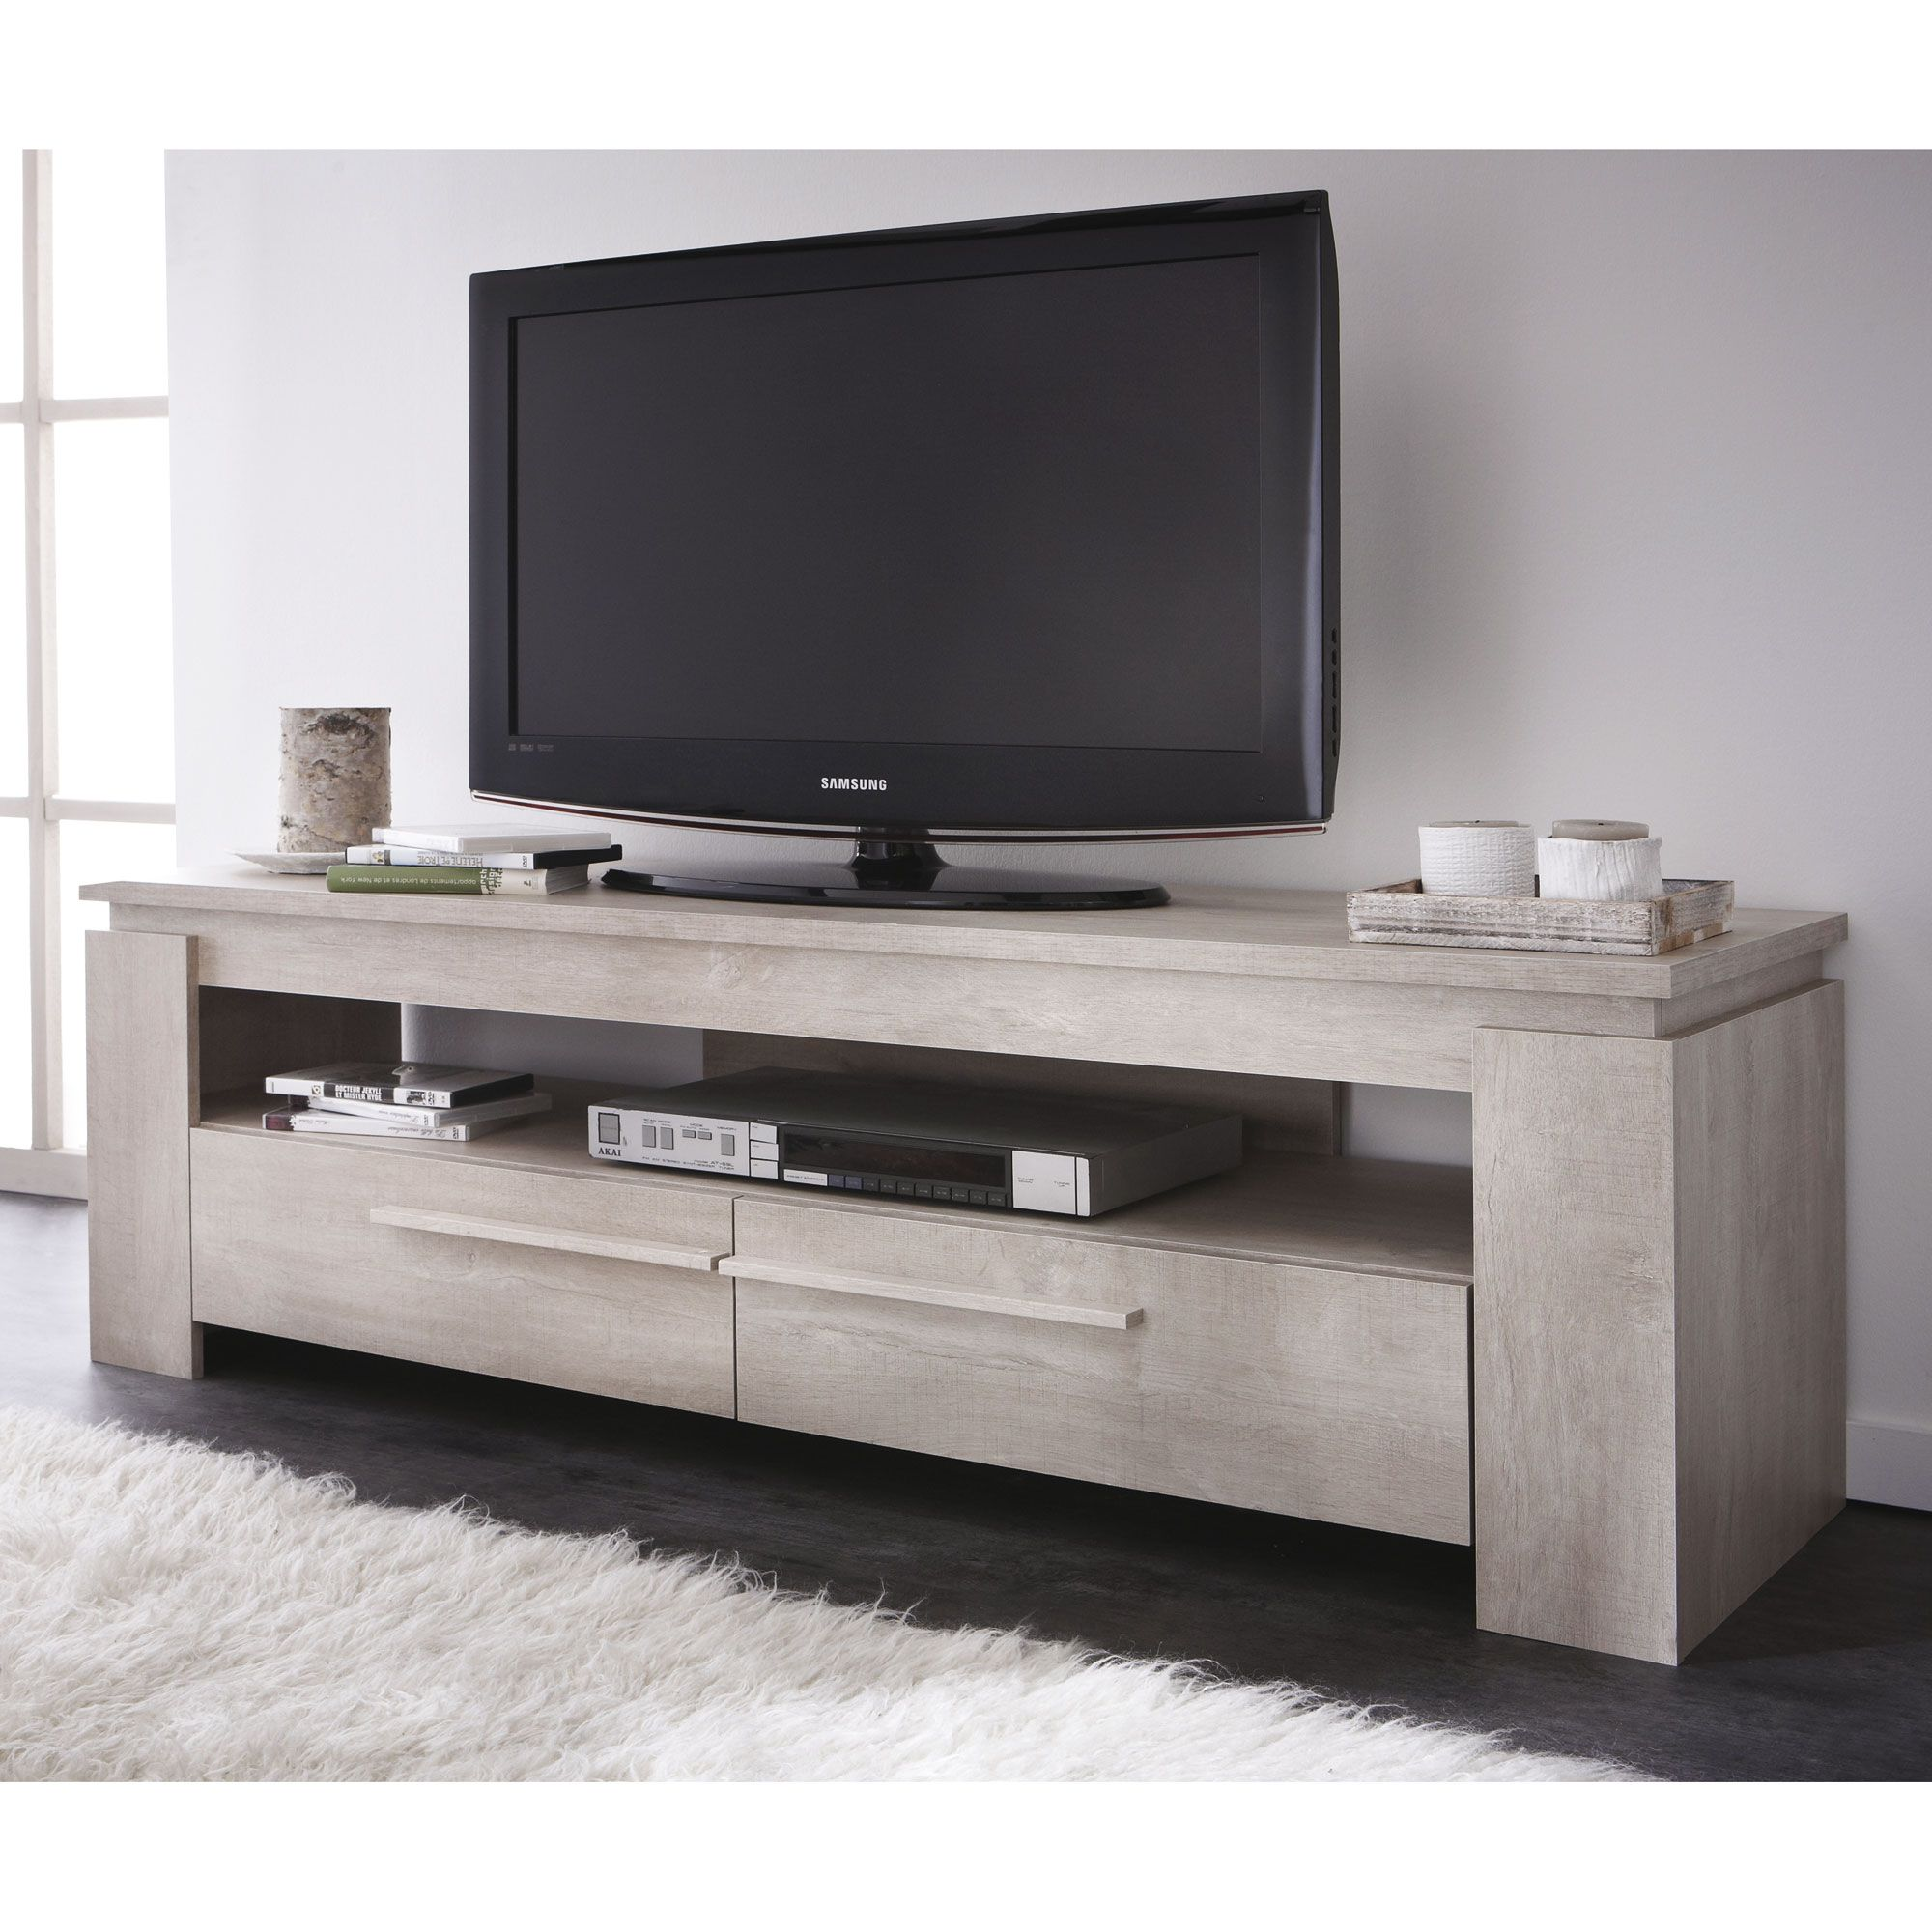 meuble tv bas en bois 2 tiroirs l140 cm segur salons tv stands and house. Black Bedroom Furniture Sets. Home Design Ideas